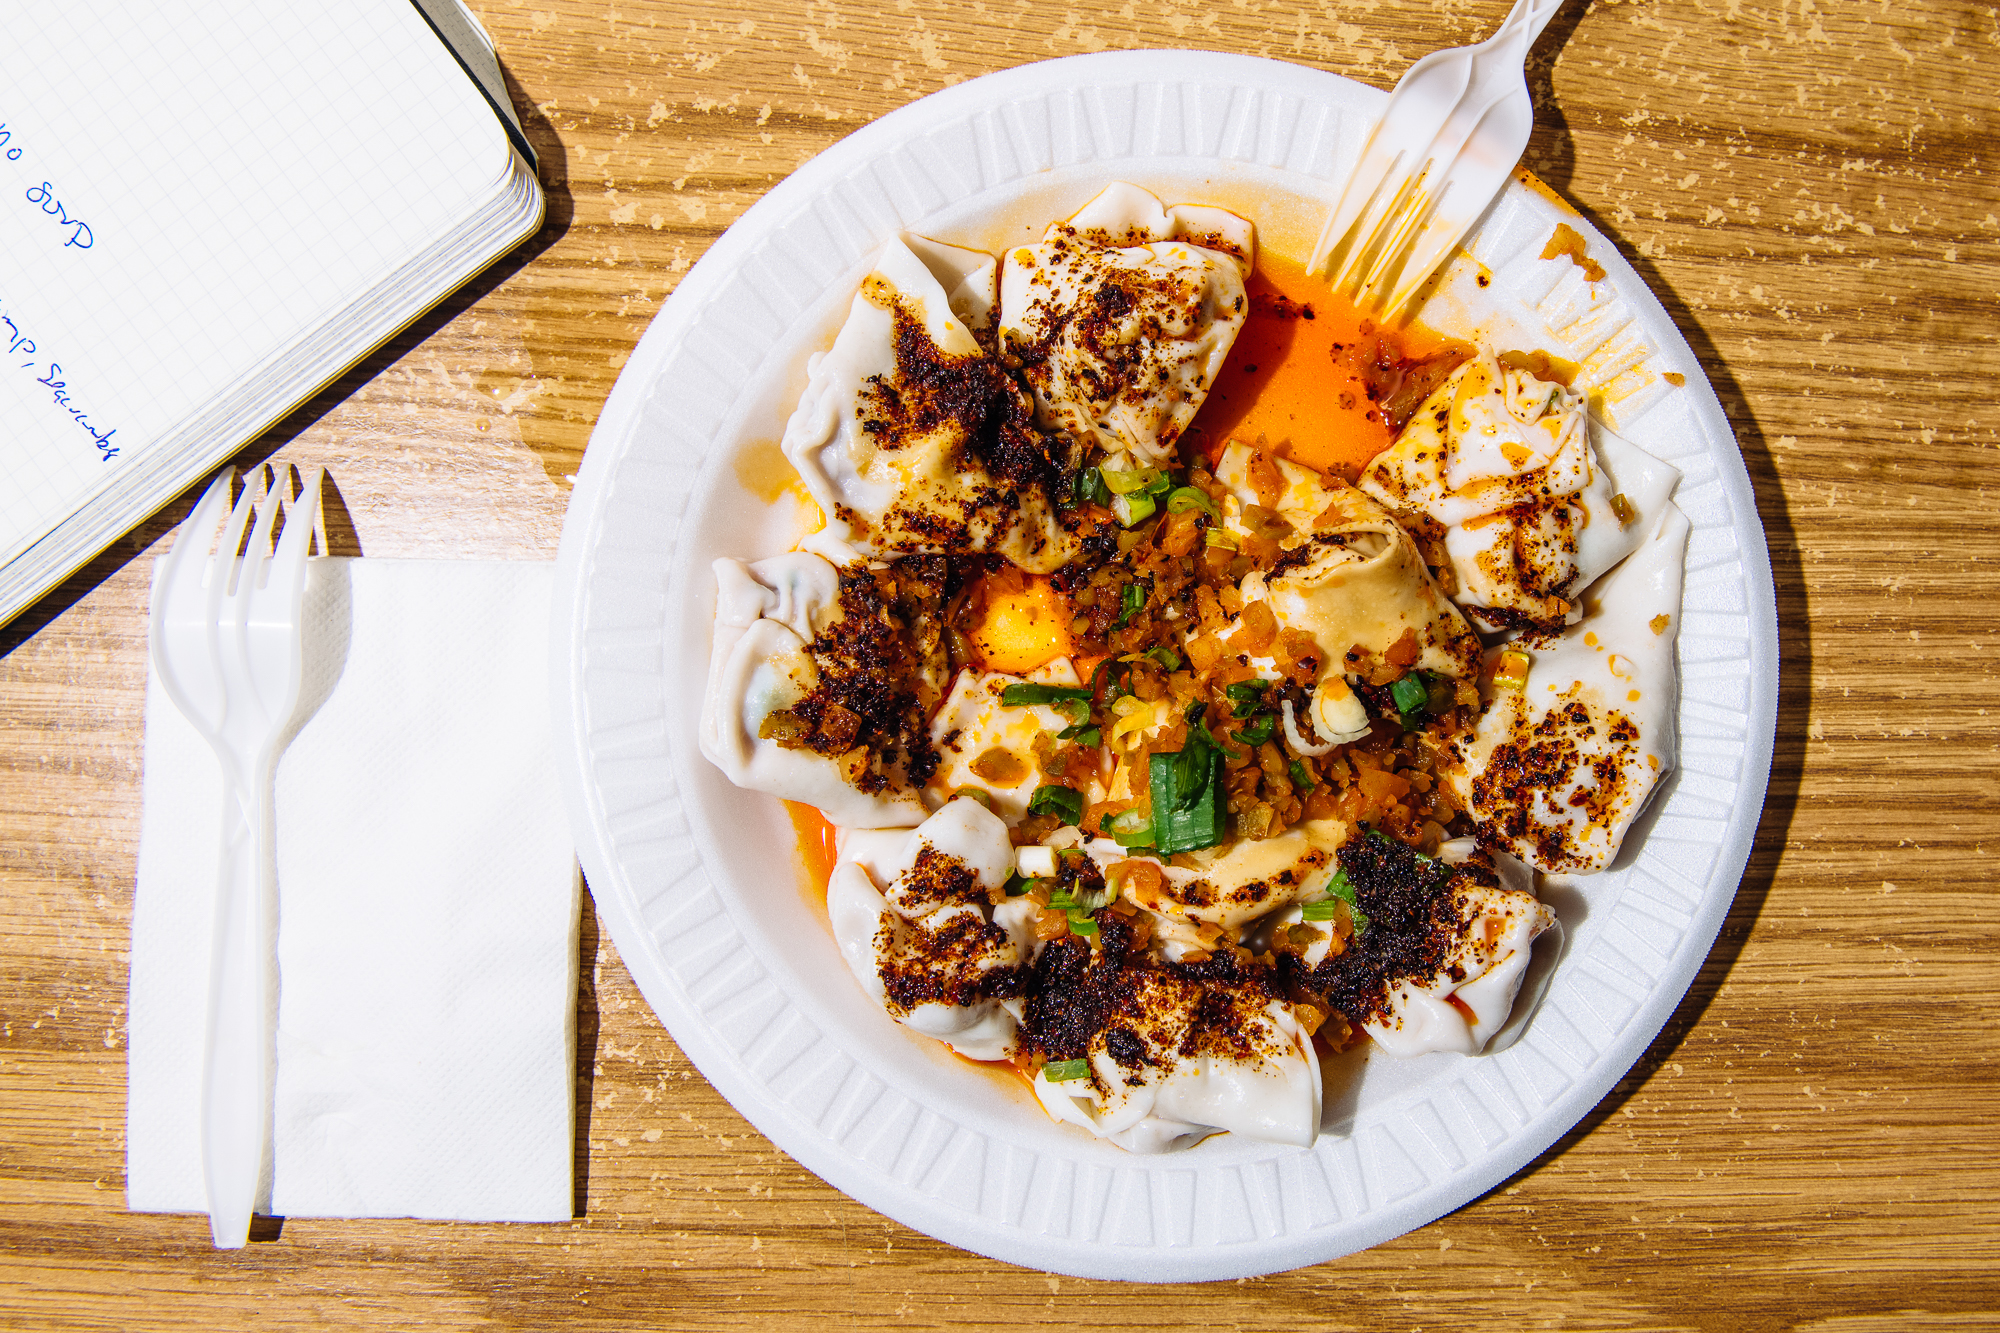 Chili oil wontons, no soup at White Bear in Flushing, Queens